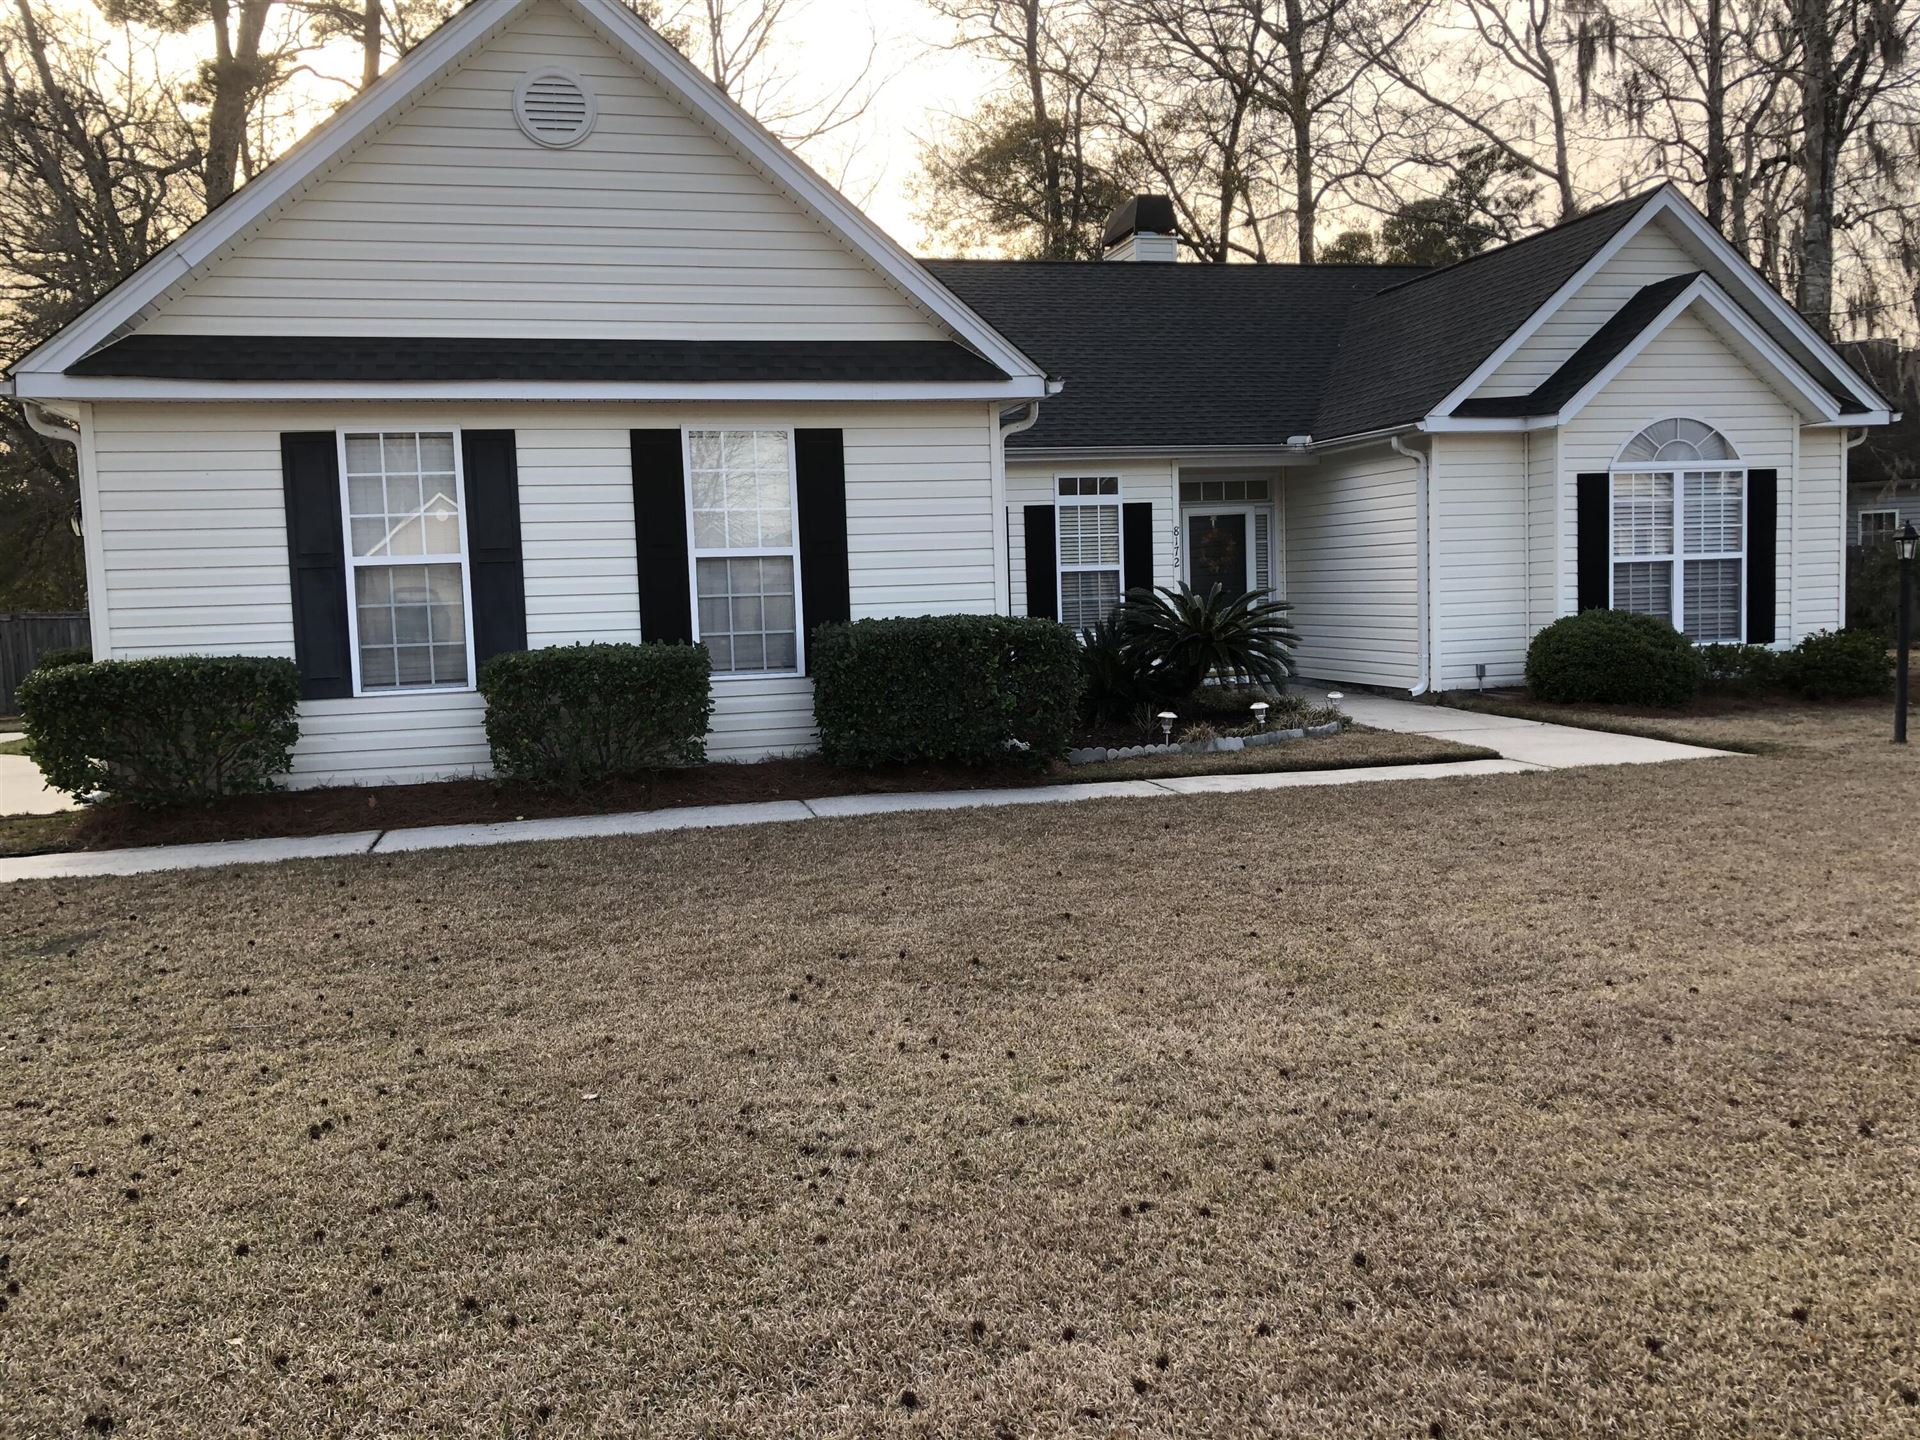 Photo of 8172 Governors Walk, North Charleston, SC 29418 (MLS # 21005196)